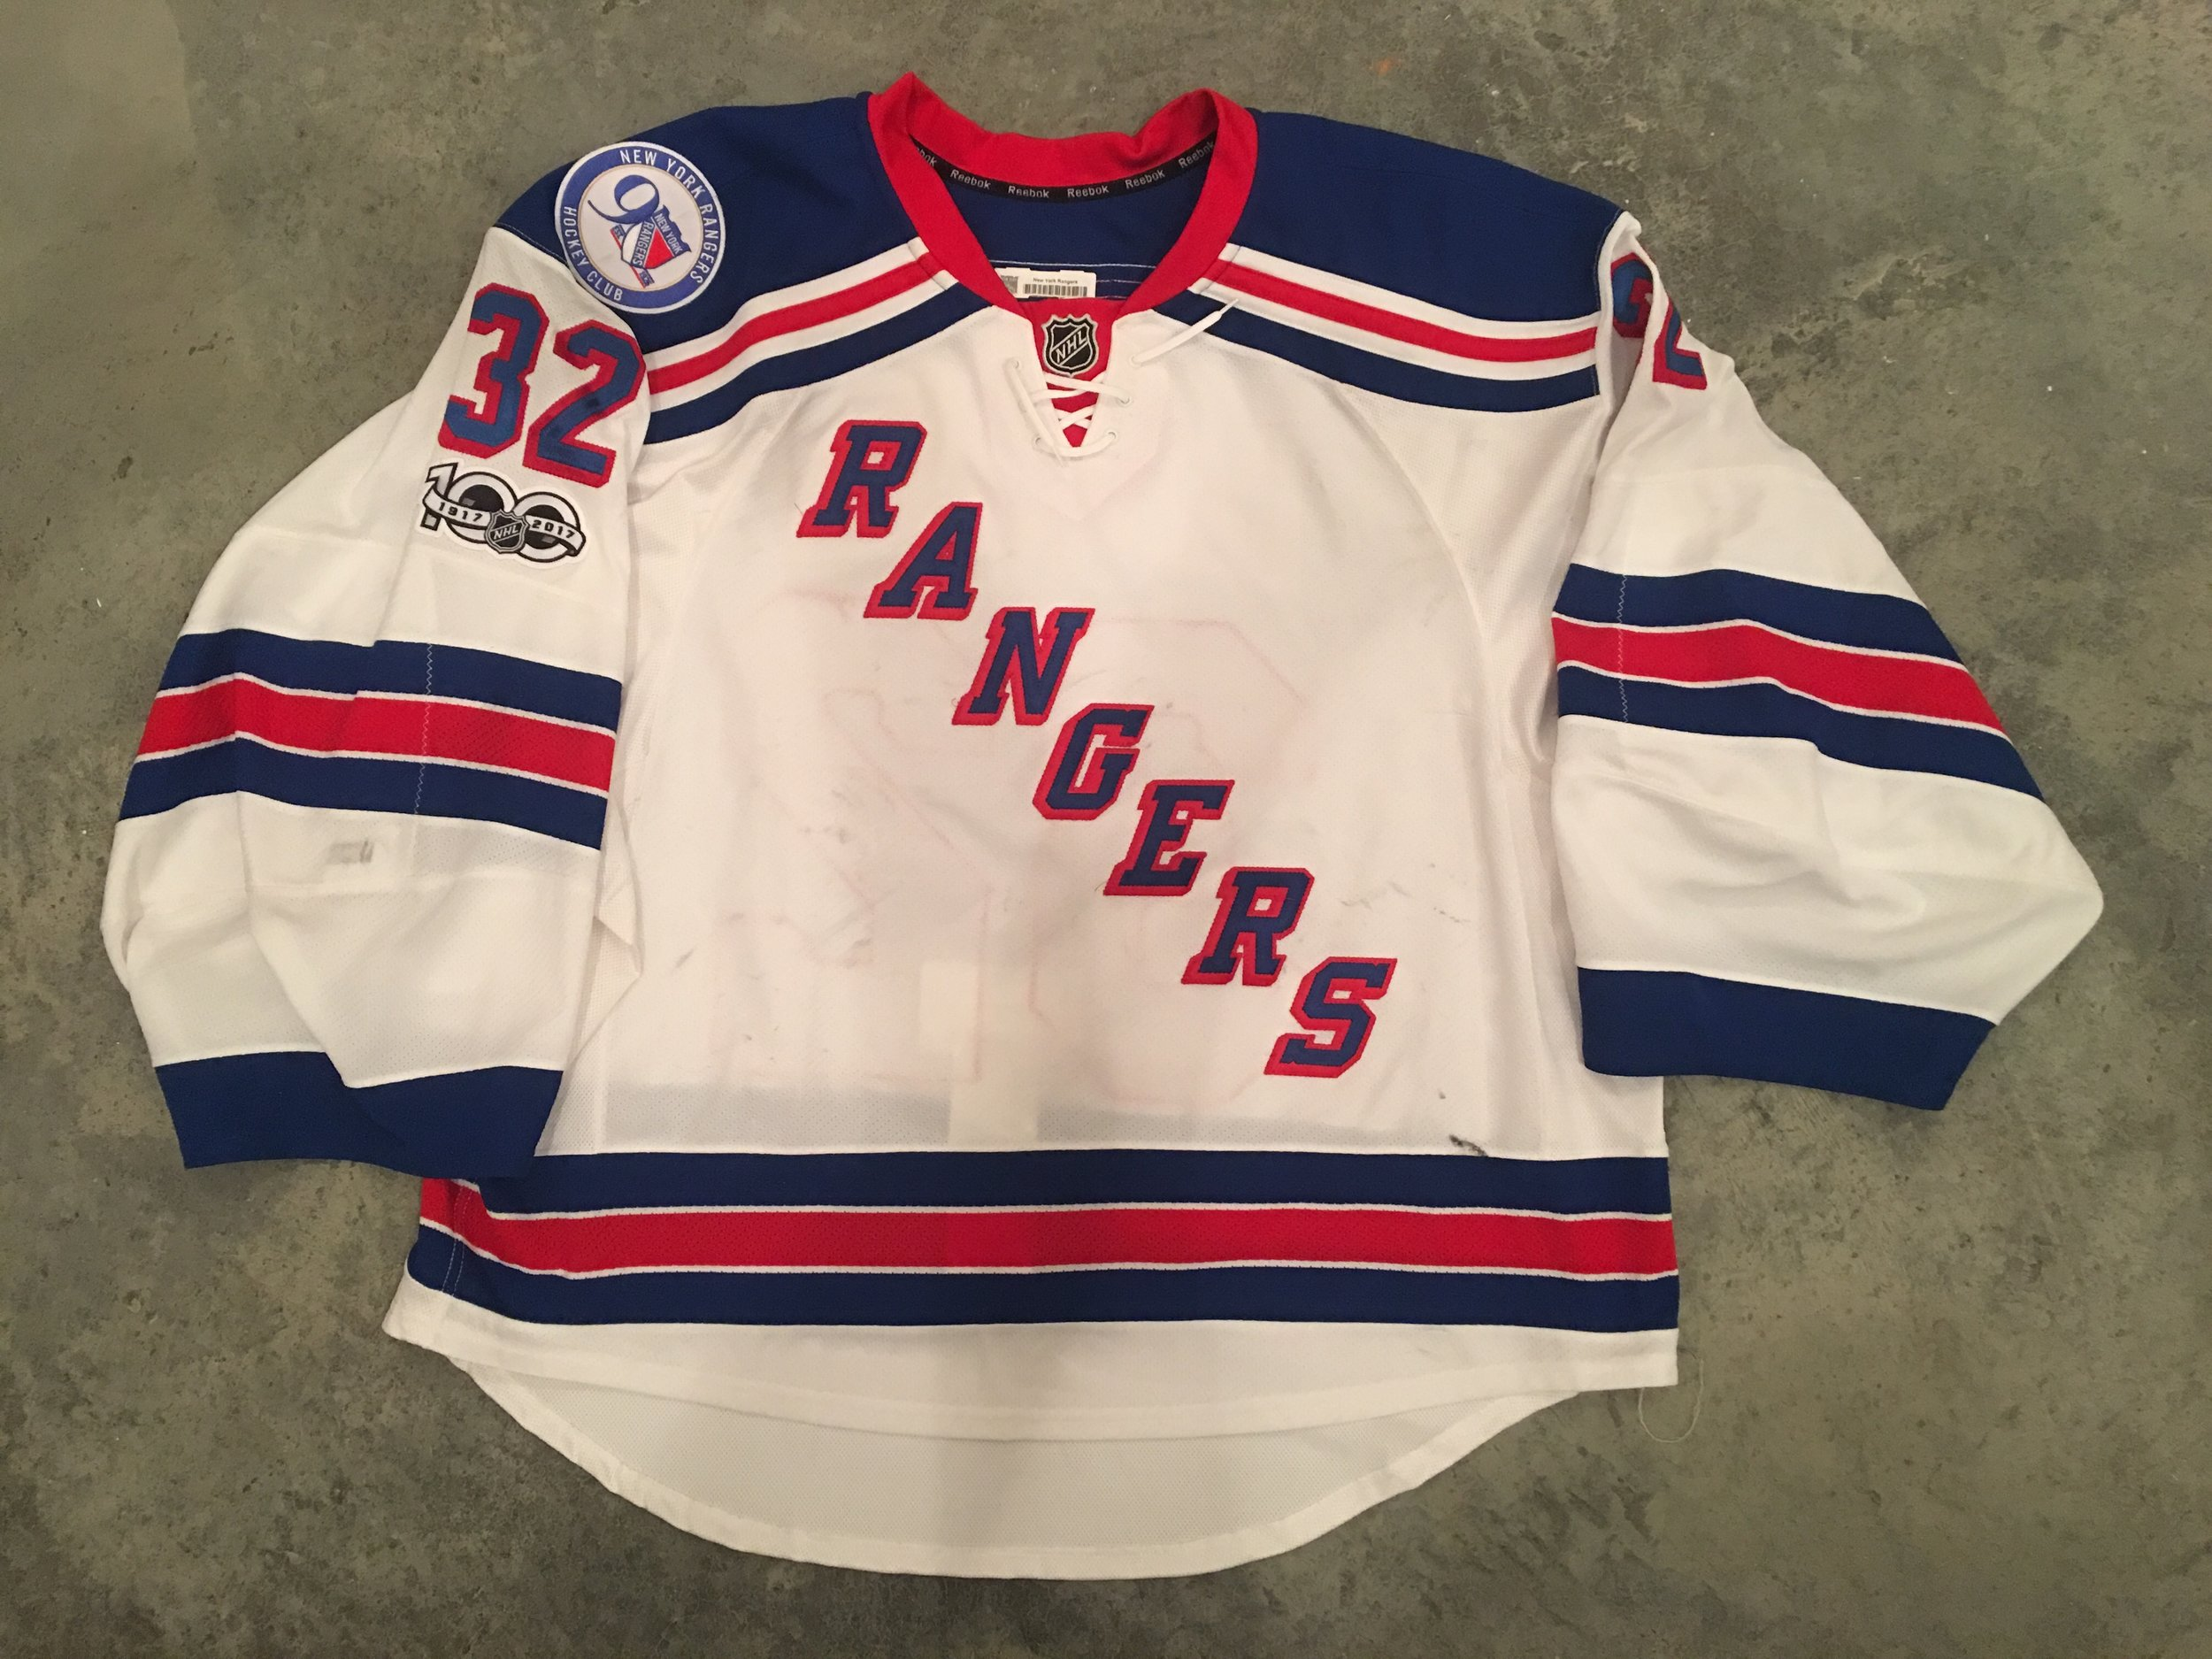 2016-17 Aanti Raanta game worn road jersey with the Rangers 90th anniversary and the NHL Centennial patches.